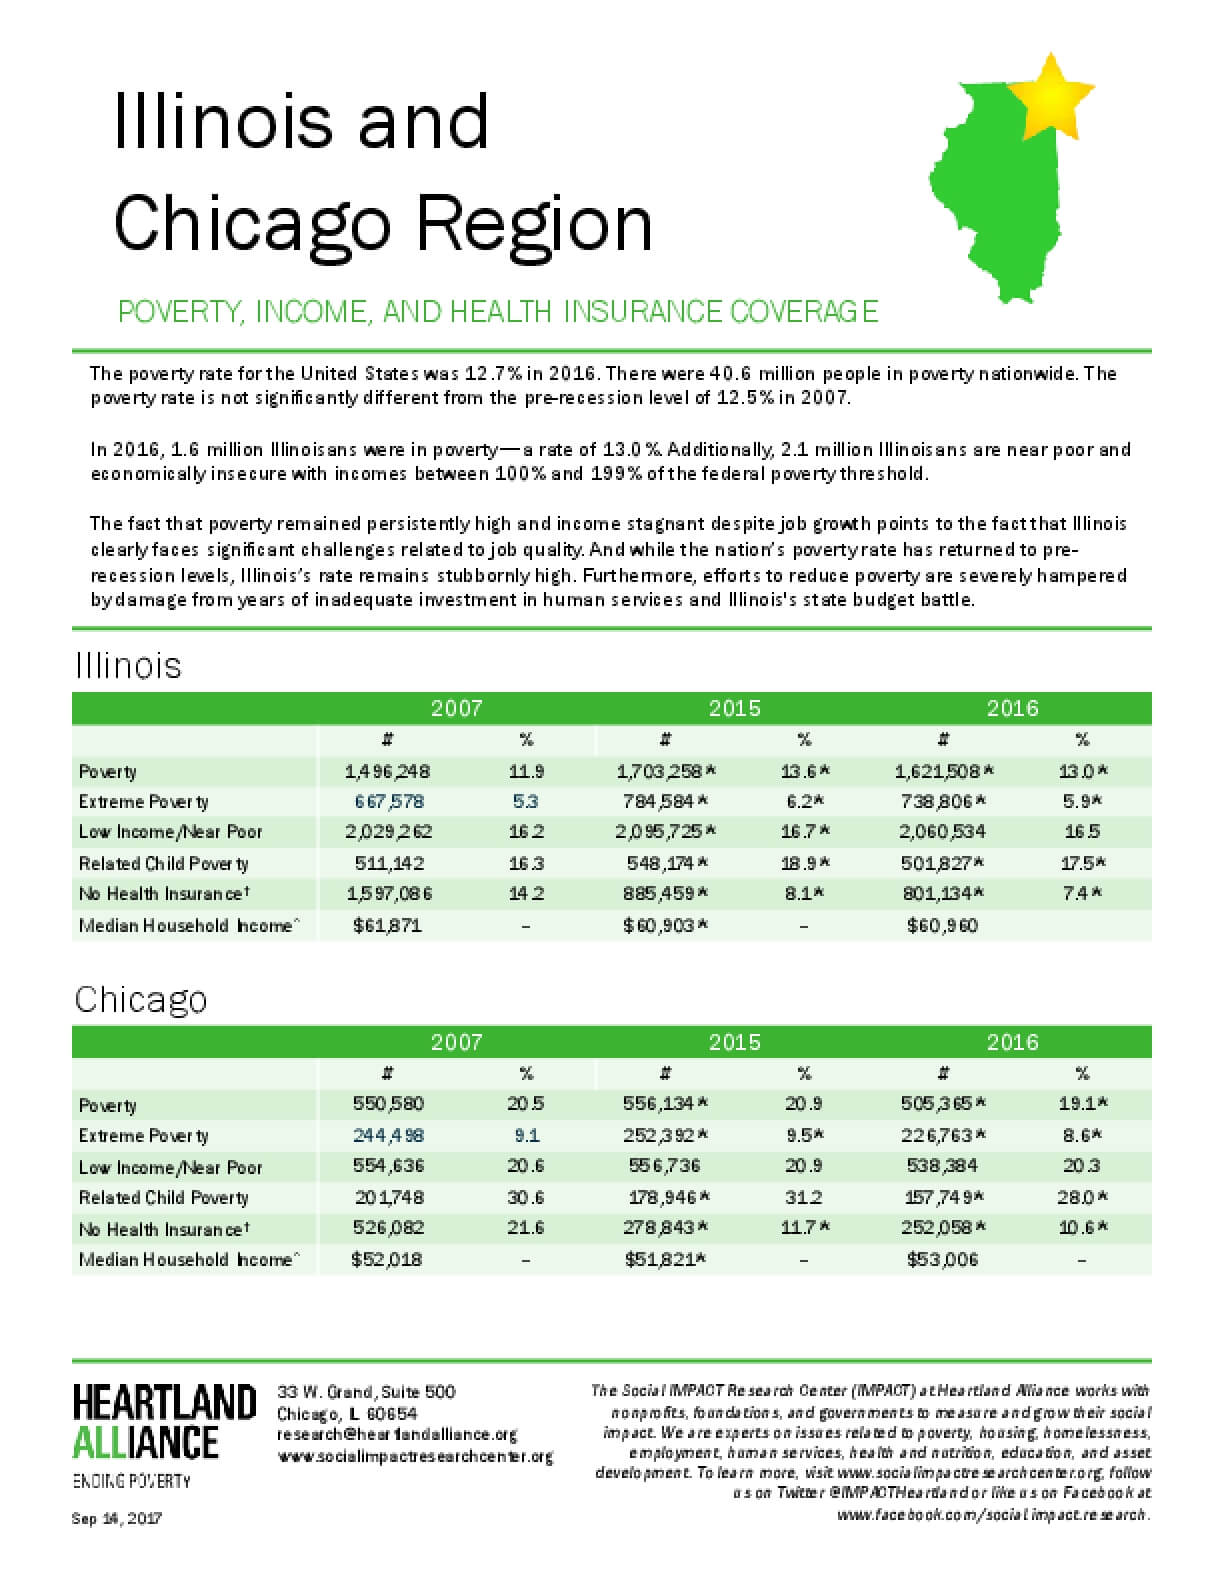 New 2016 Poverty Data for Illinois & Chicago